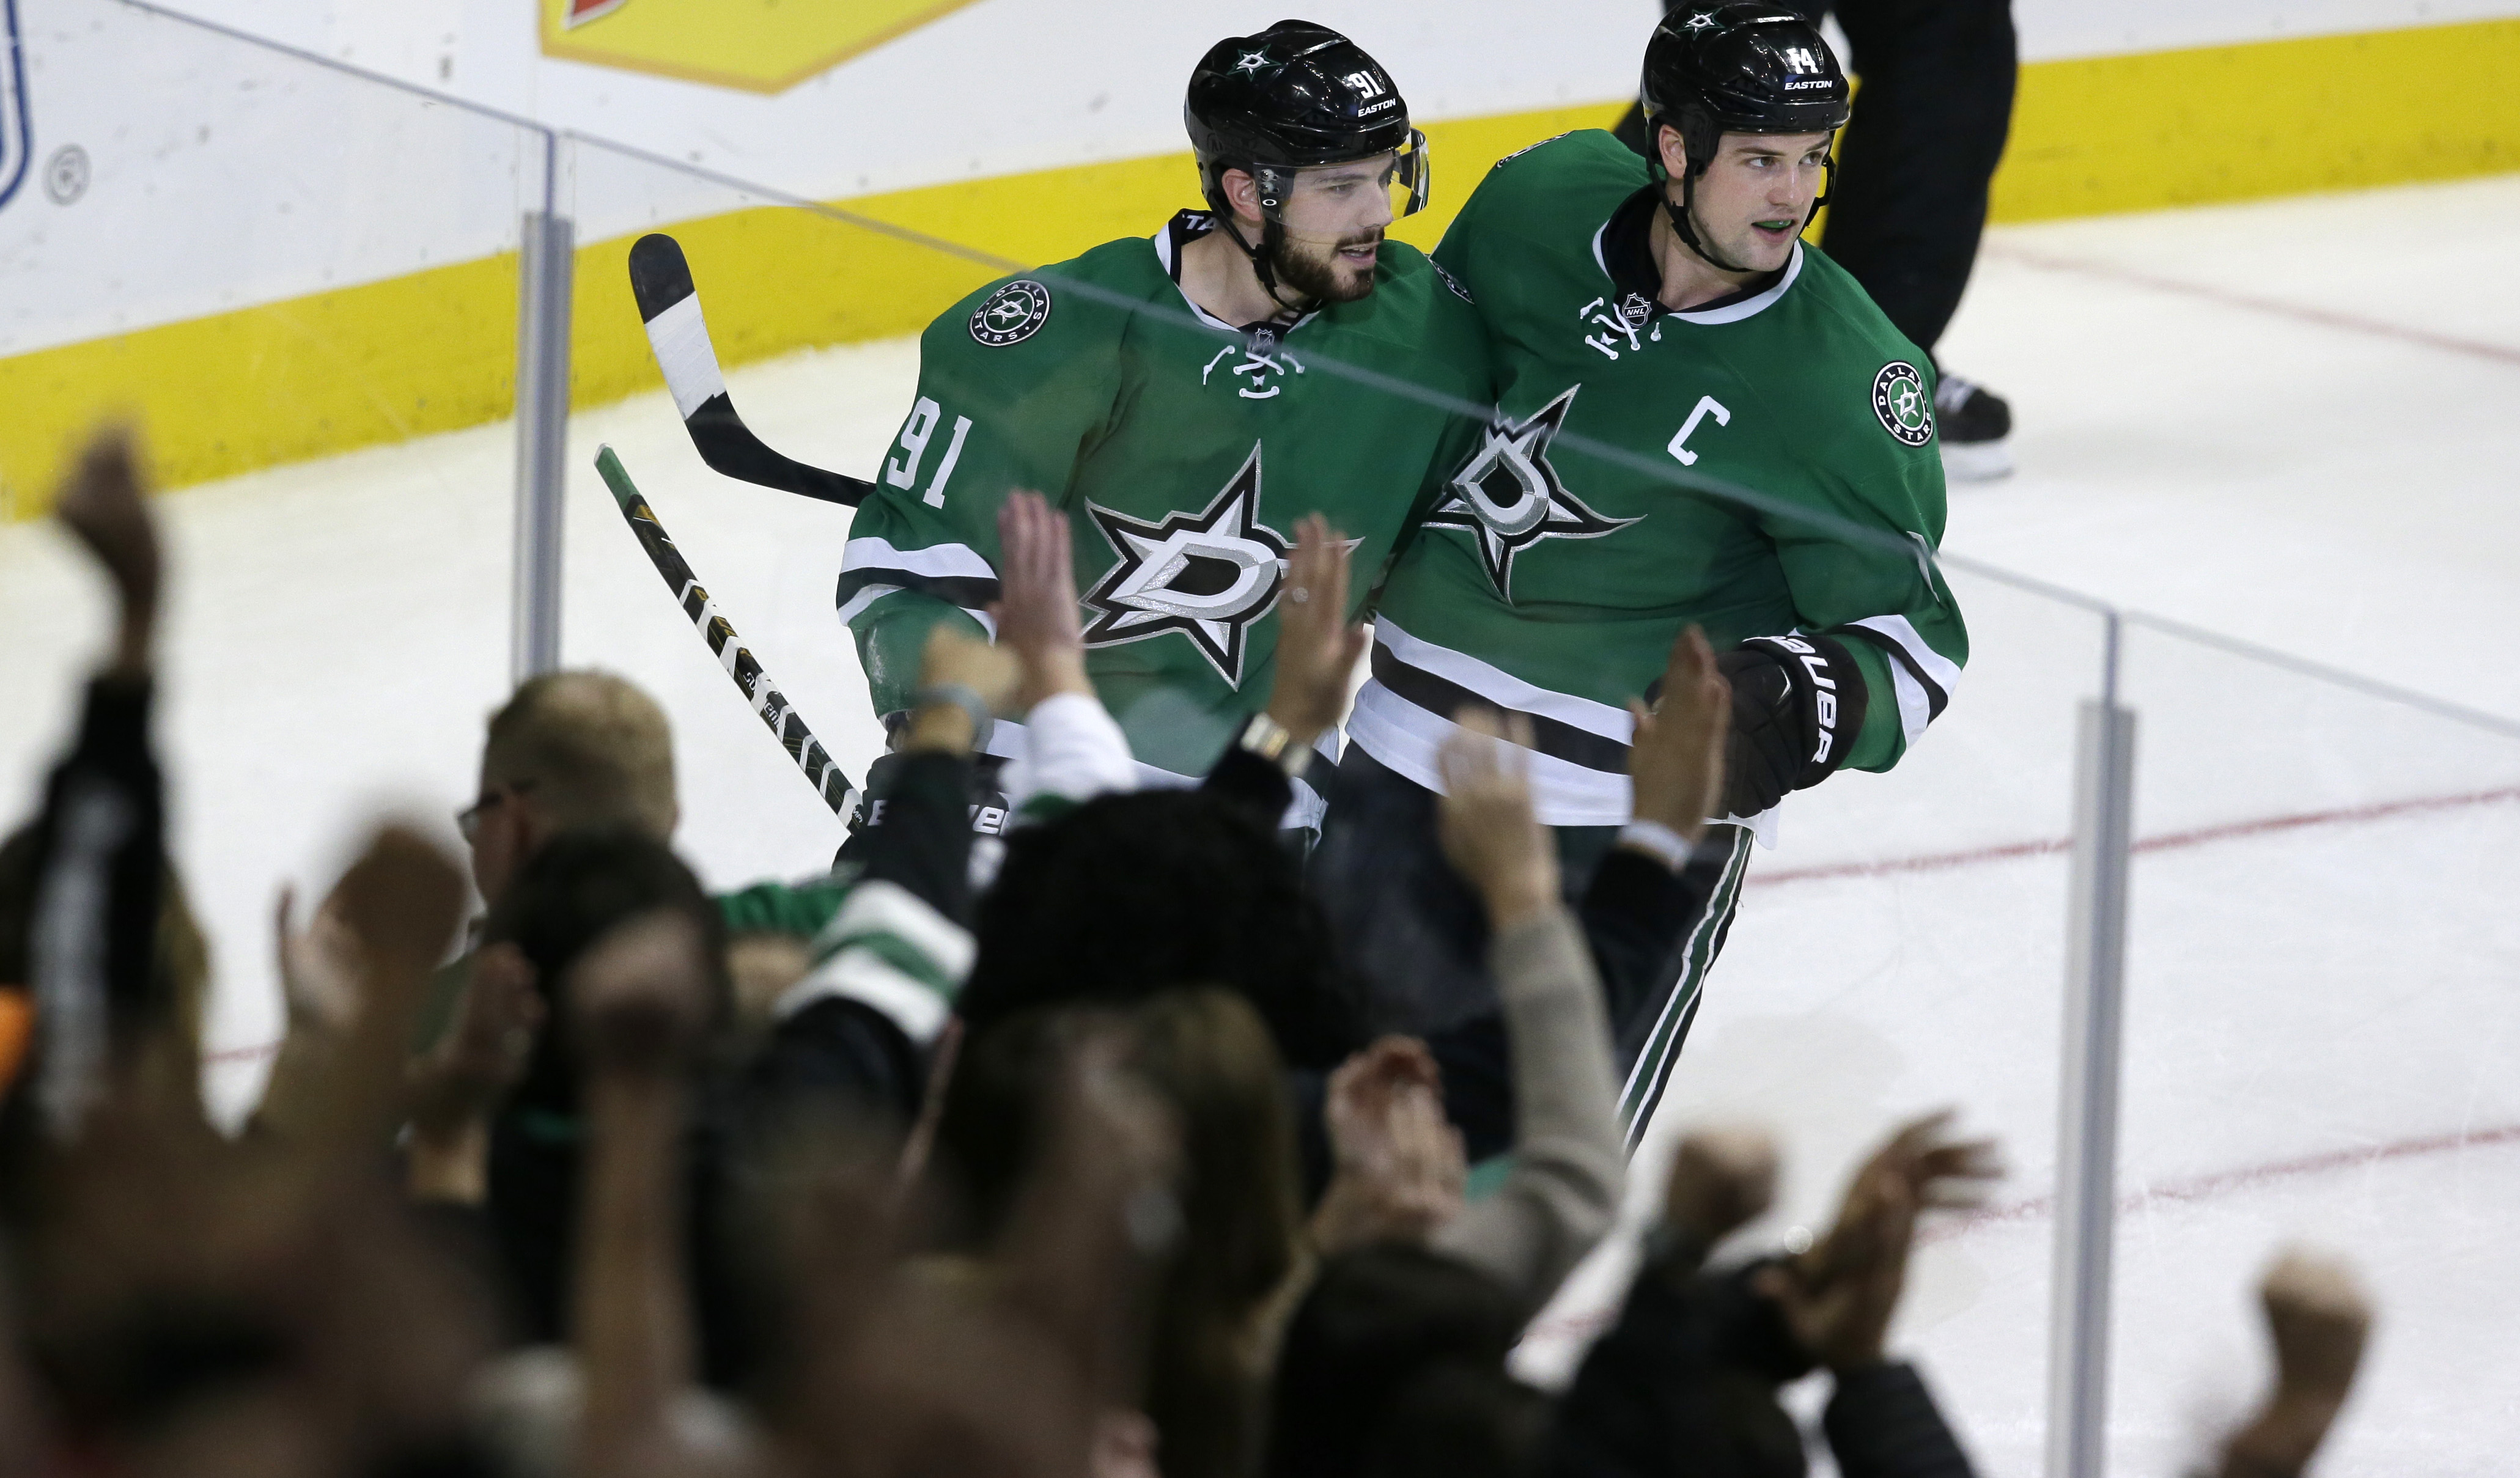 Dallas Stars center Tyler Seguin (91) celebrates his goal with teammate Dallas Stars left wing Jamie Benn (14) during the third period of an NHL hockey game against the San Jose Sharks, Saturday, Oct. 31, 2015, in Dallas. The Stars won 5-3. (AP Photo/LM O